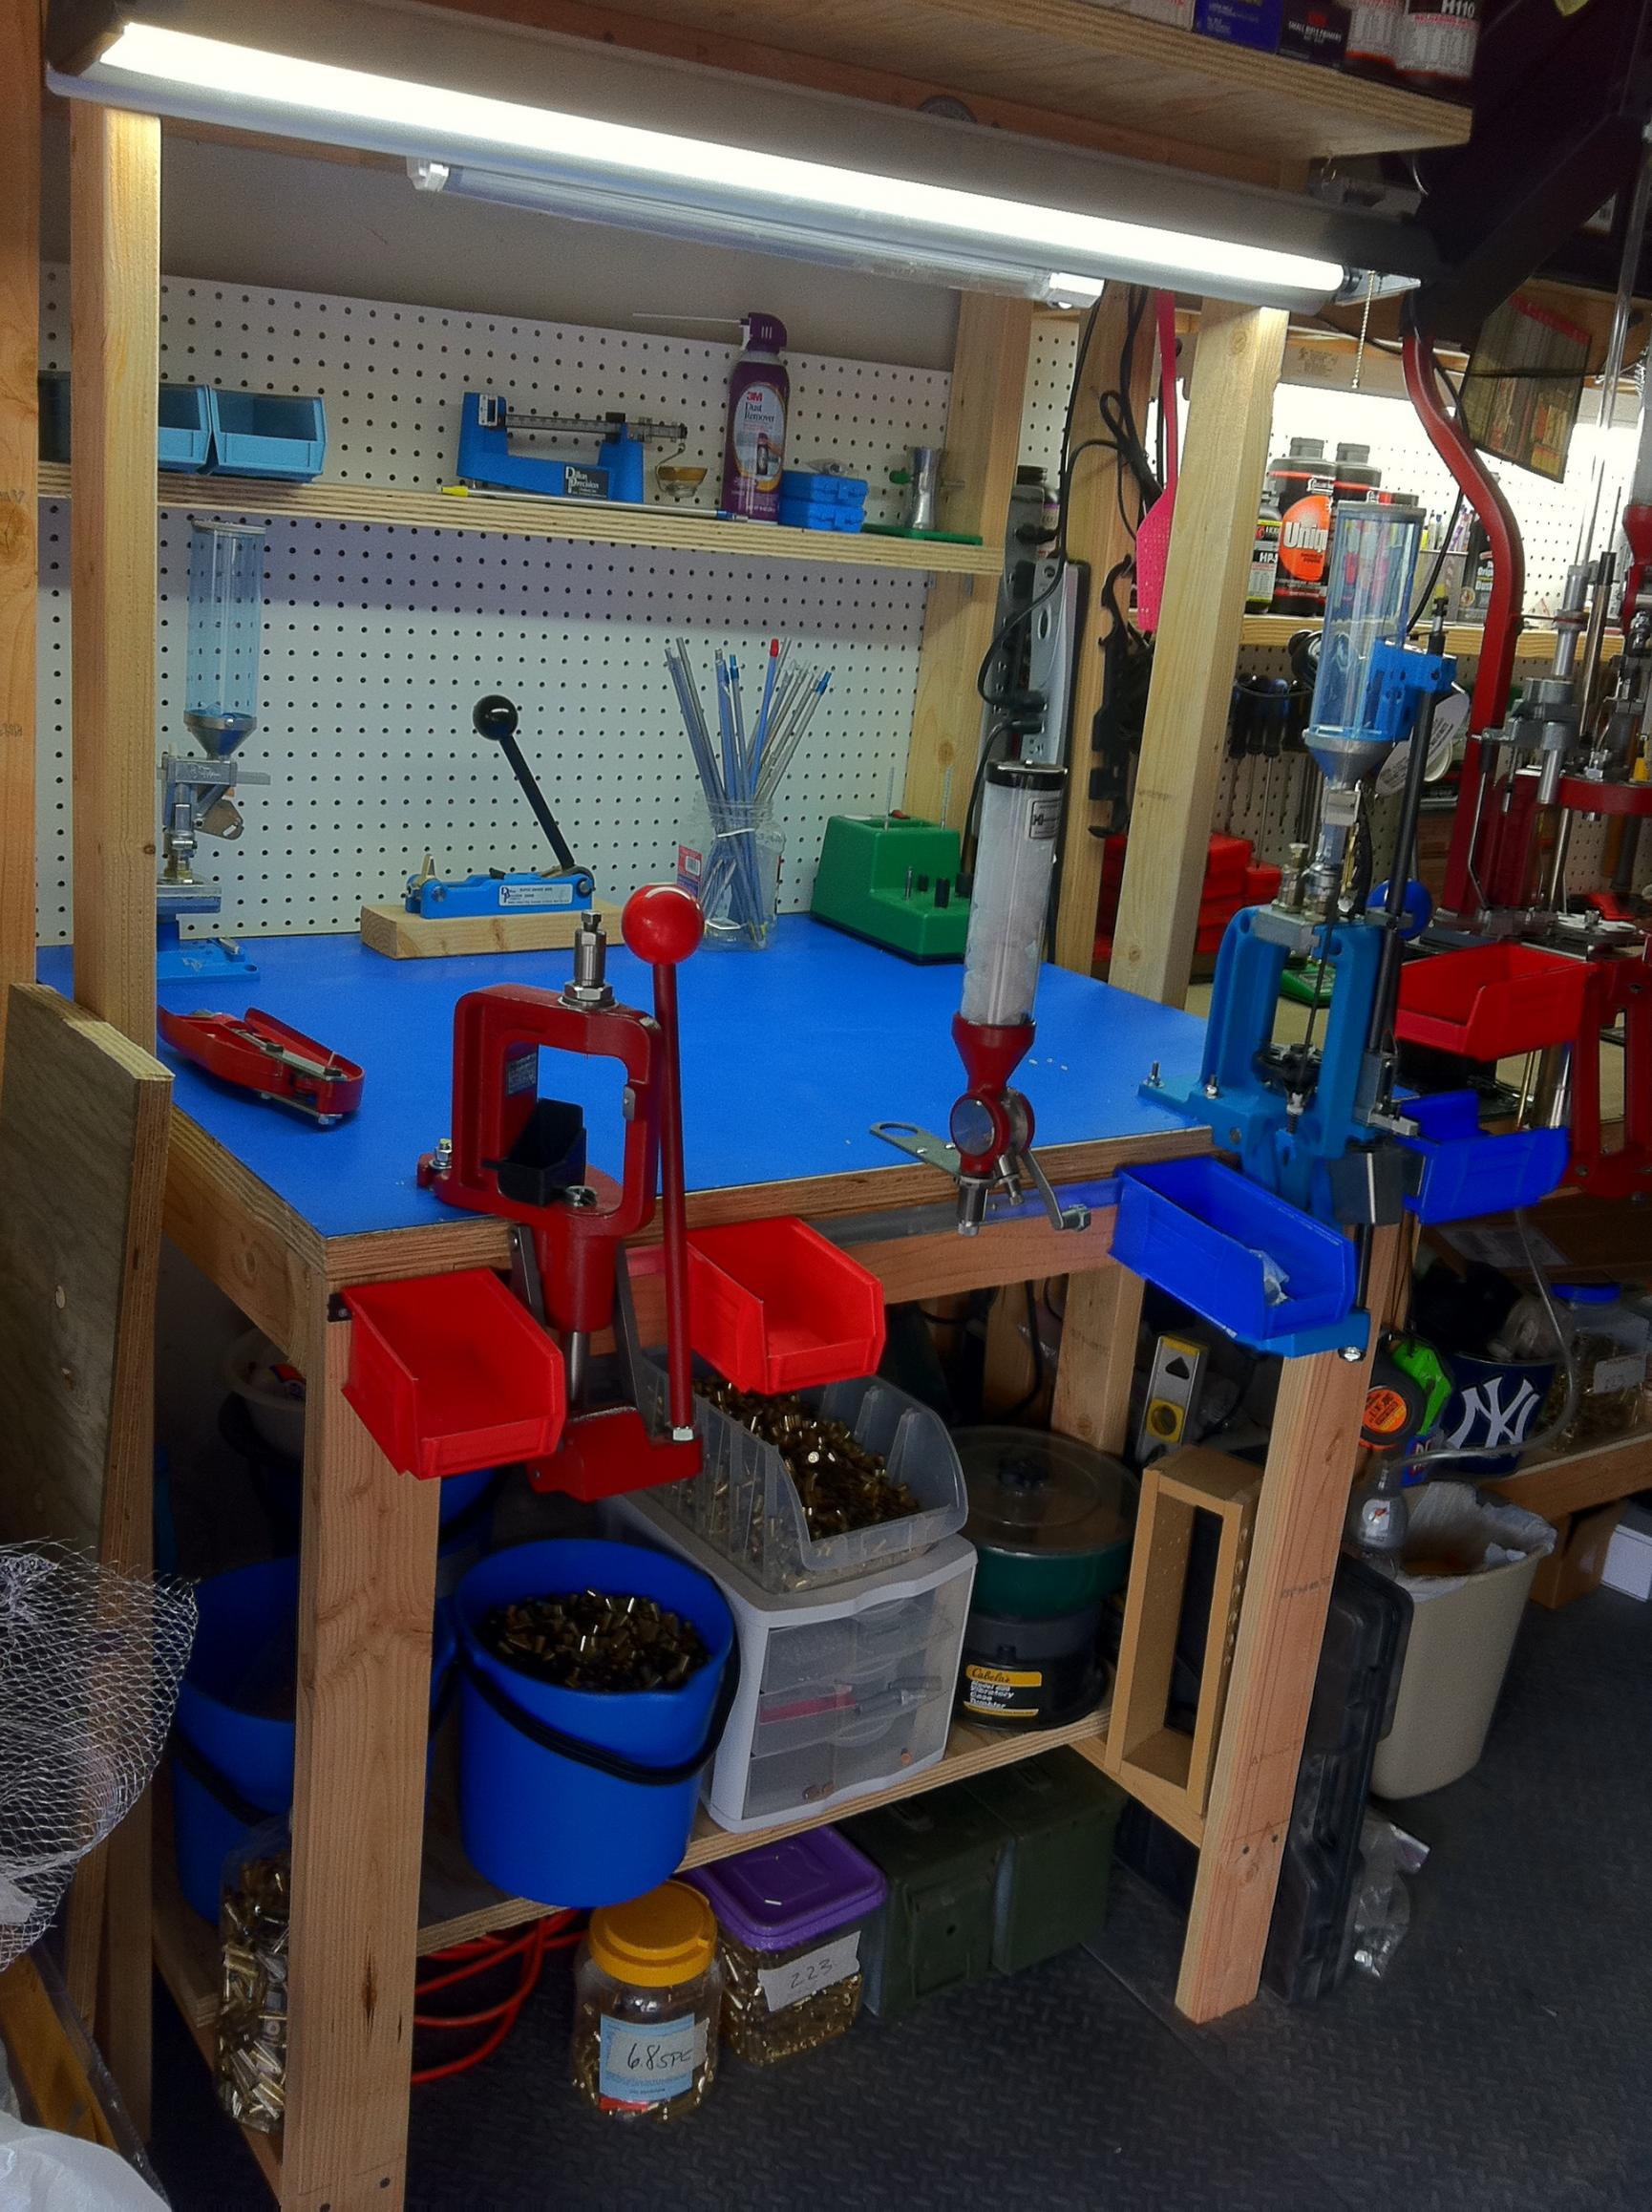 Let's See Your Reloading Bench-imageuploadedbytapatalk1313911923.402188.jpg